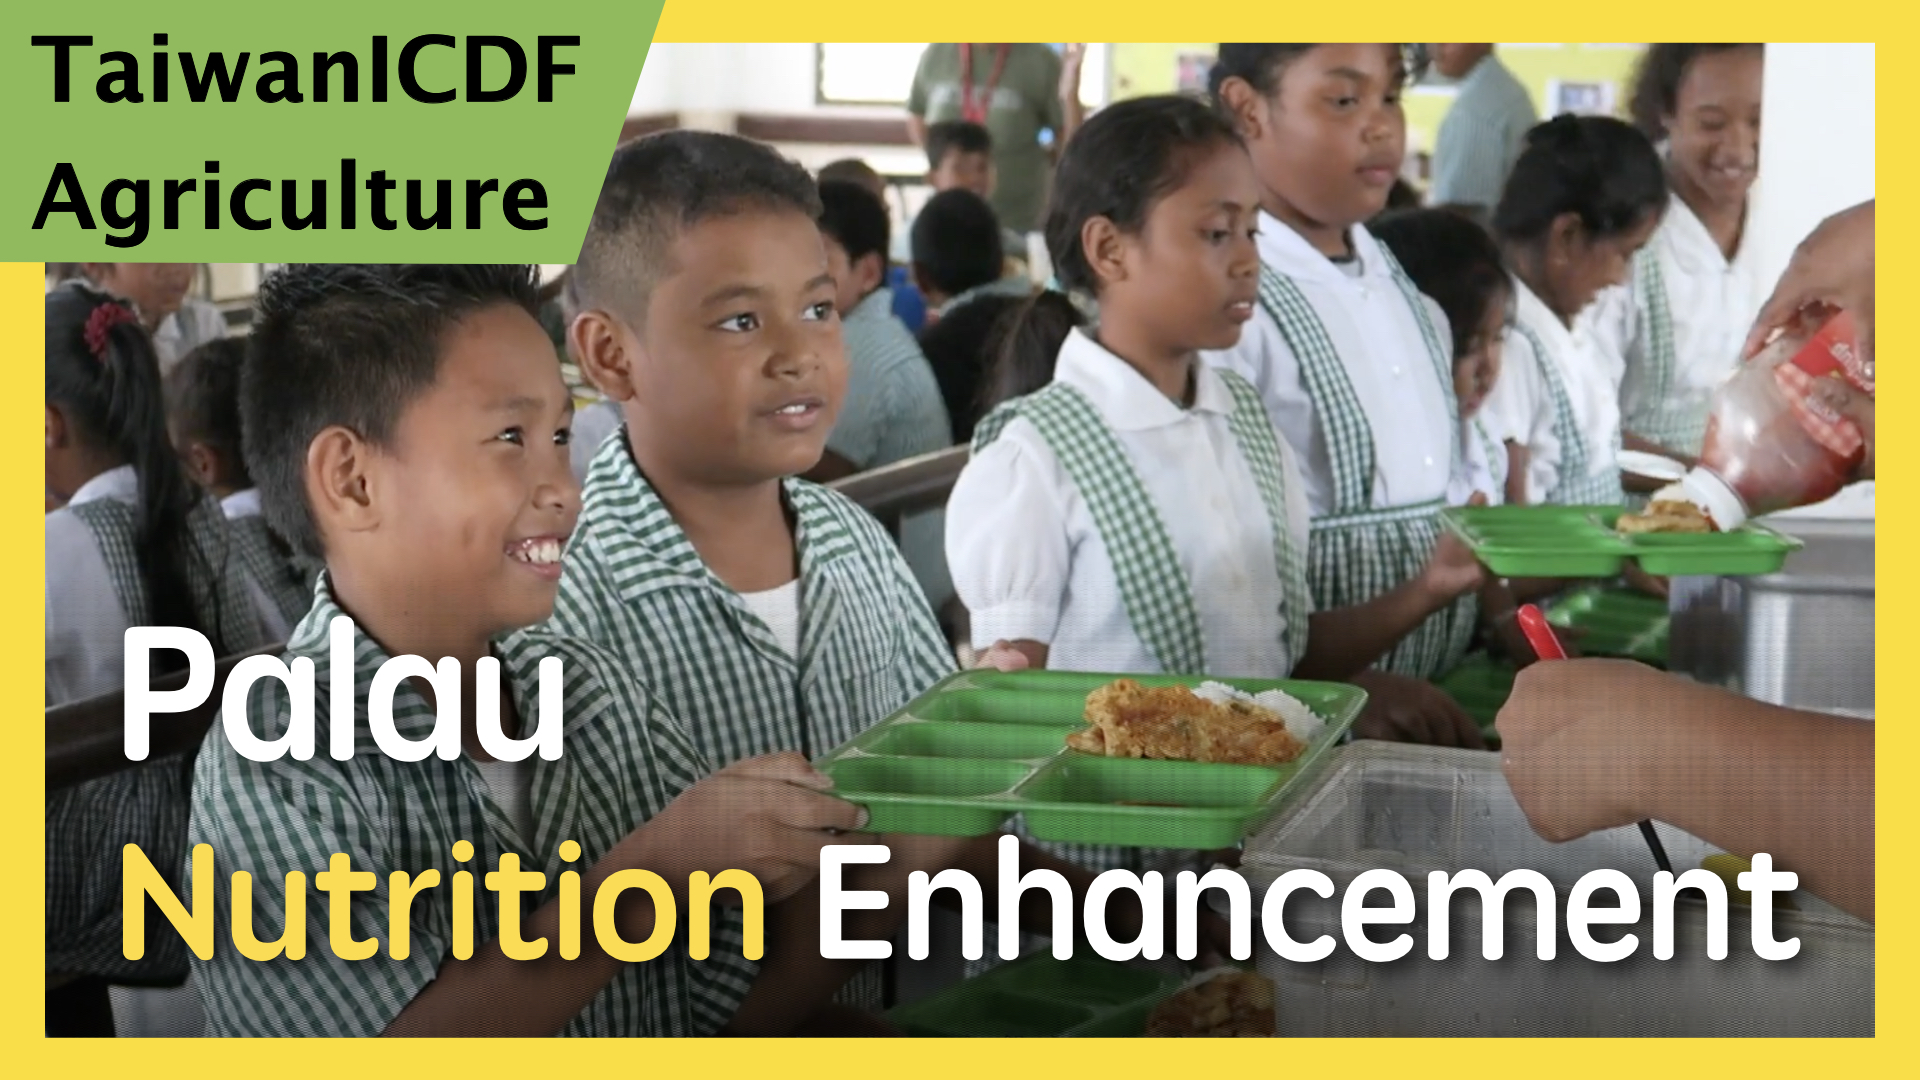 Horticulture and Nutrition Enhancement Project (Palau)